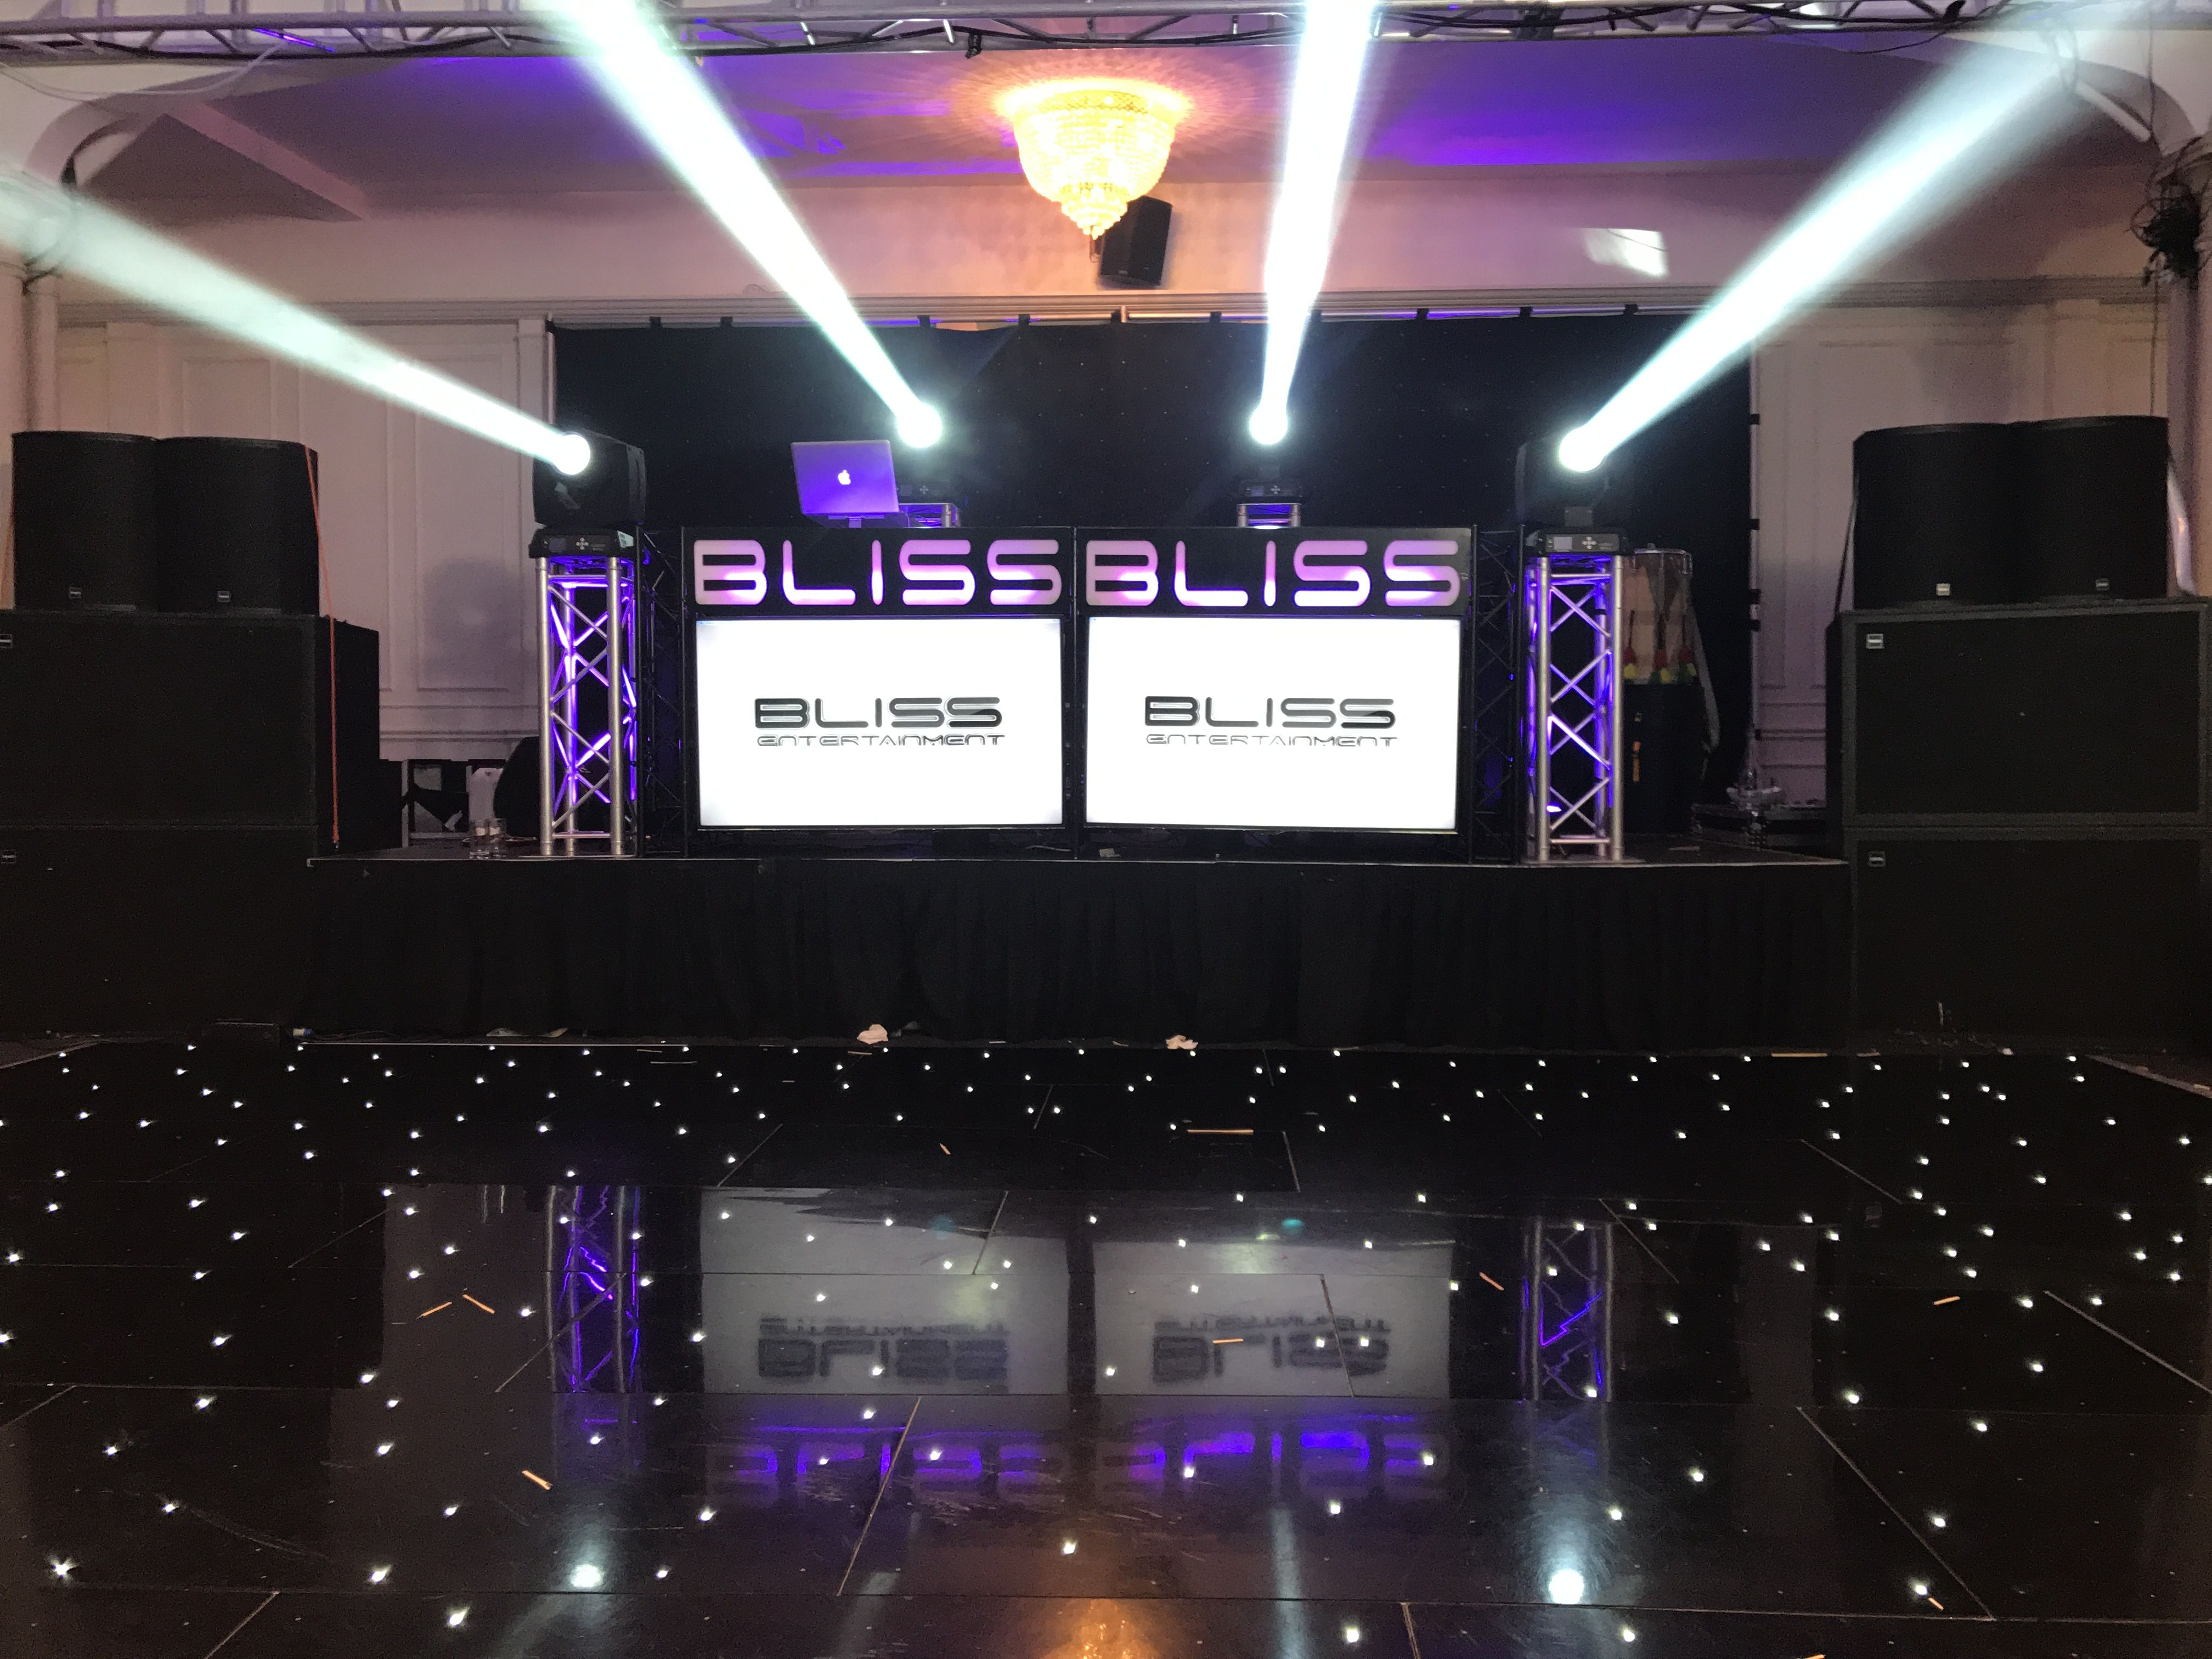 Bliss Entertainment A Birmingham Based Company That Specializes In Indian Wedding Dj In London We Will R Wedding Dj Indian Wedding Inexpensive Wedding Venues